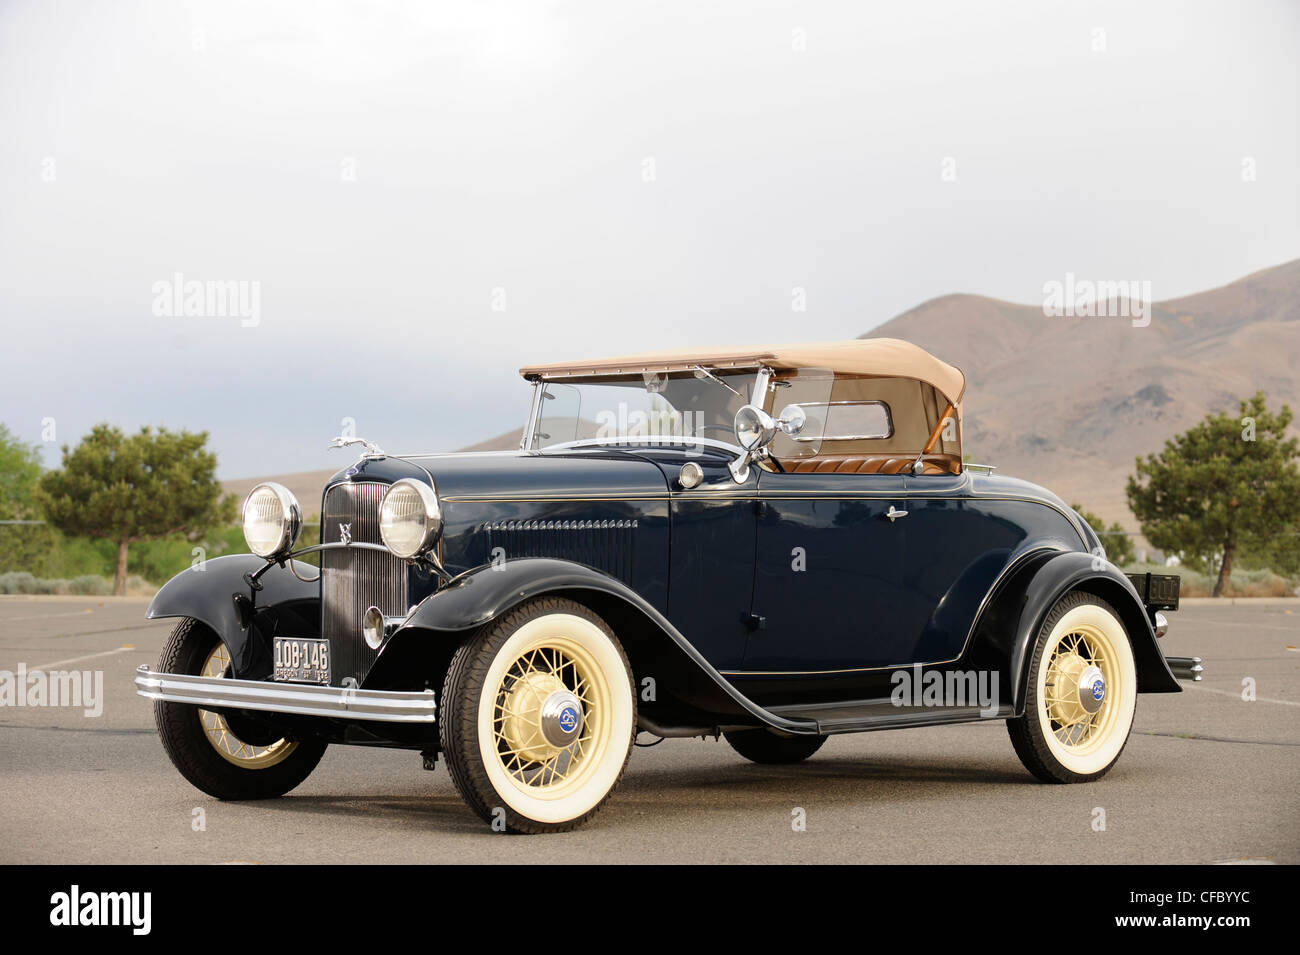 1932 Ford 18 V8 Deluxe Roasdster Stock Photo Royalty Free